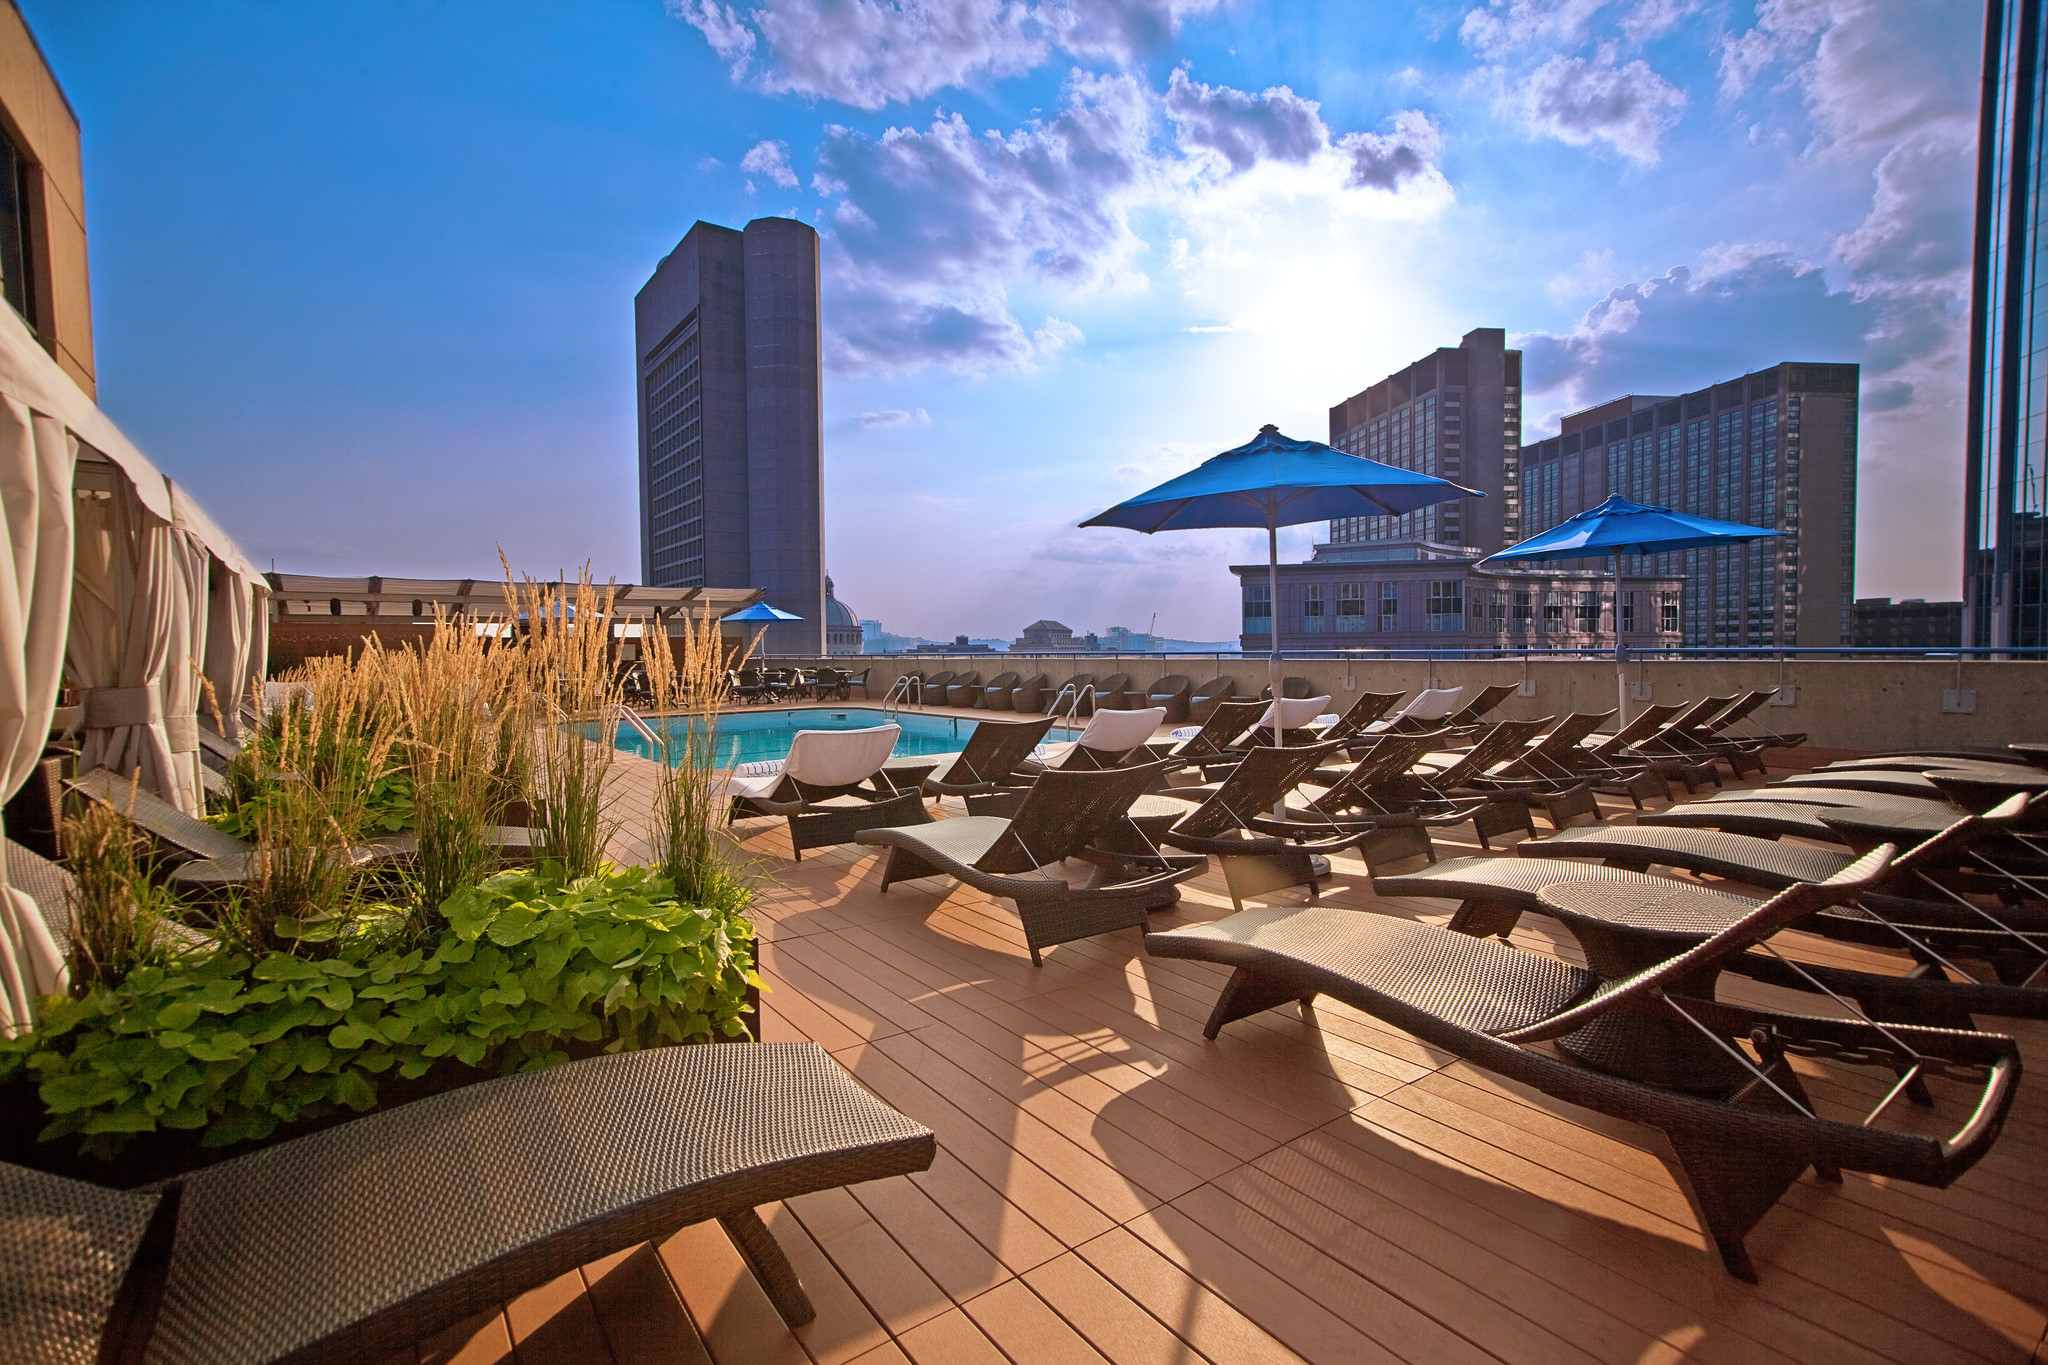 The Colonnade Hotel's Roof Top Pool